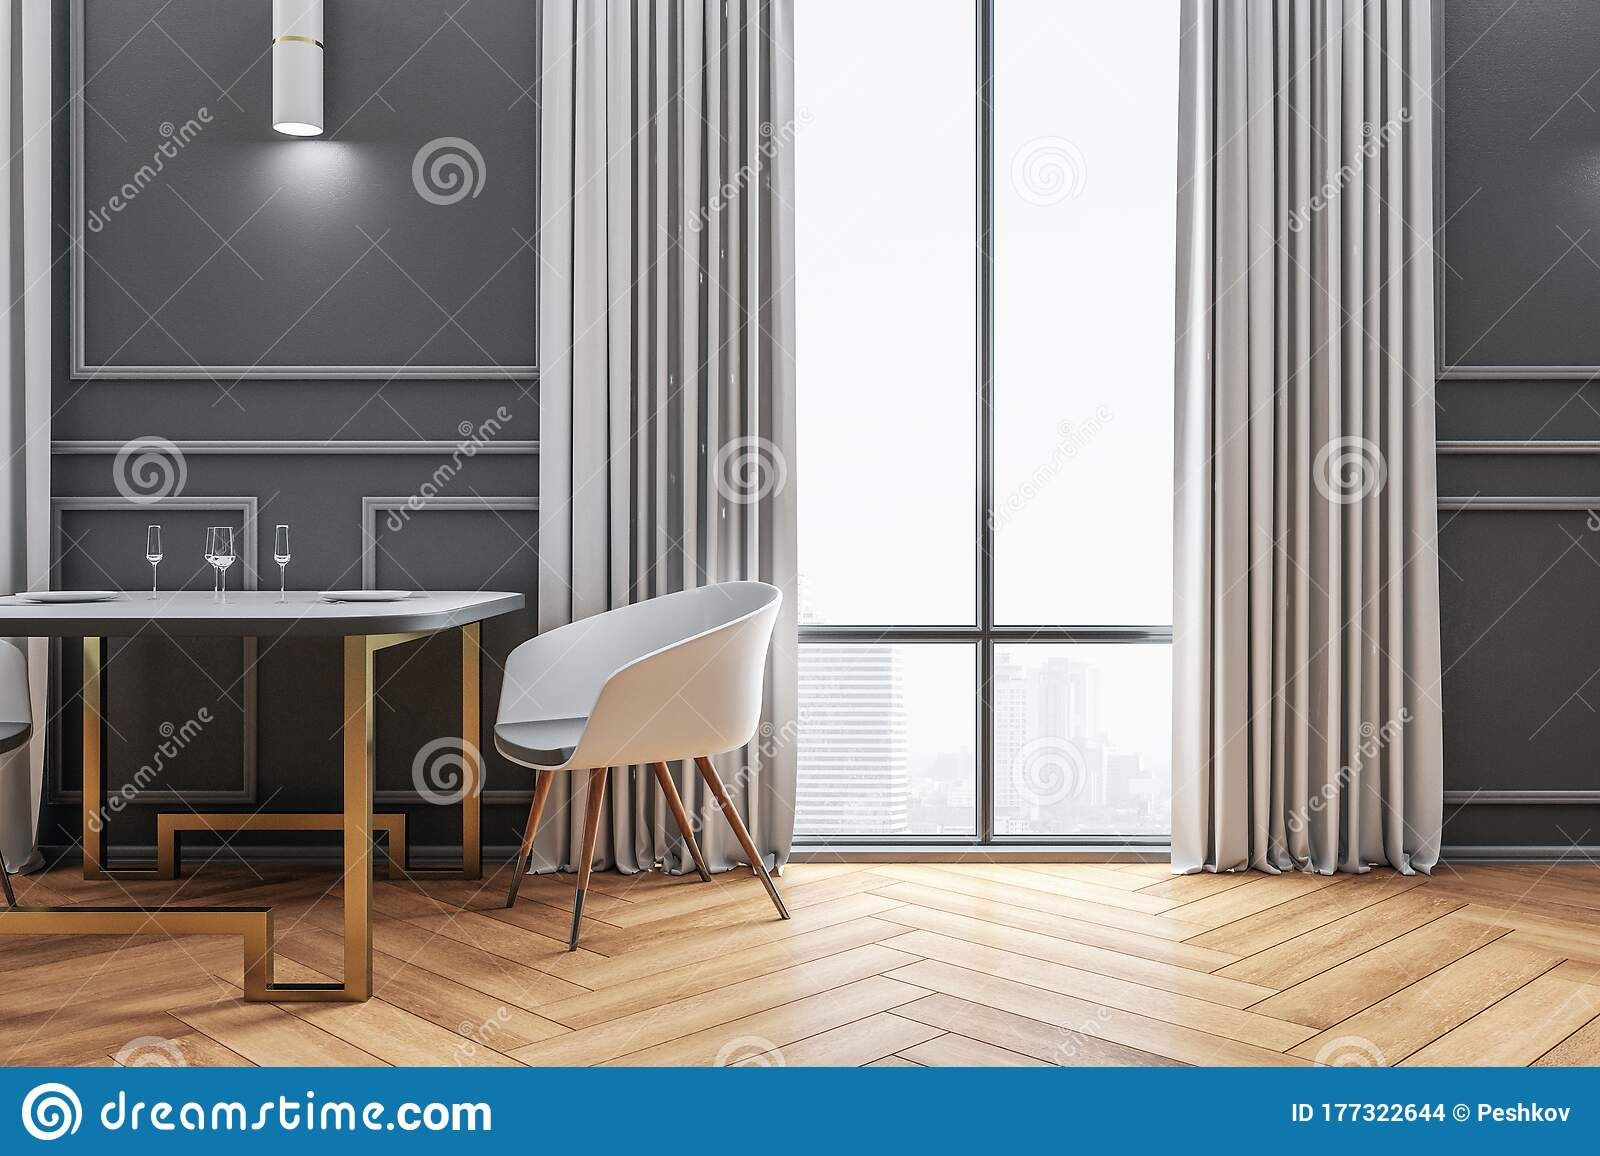 Minimalistic Cafe Interior With Decorative Dining Furniture Stock Illustration Illustration Of Cafe Contemporary 177322644